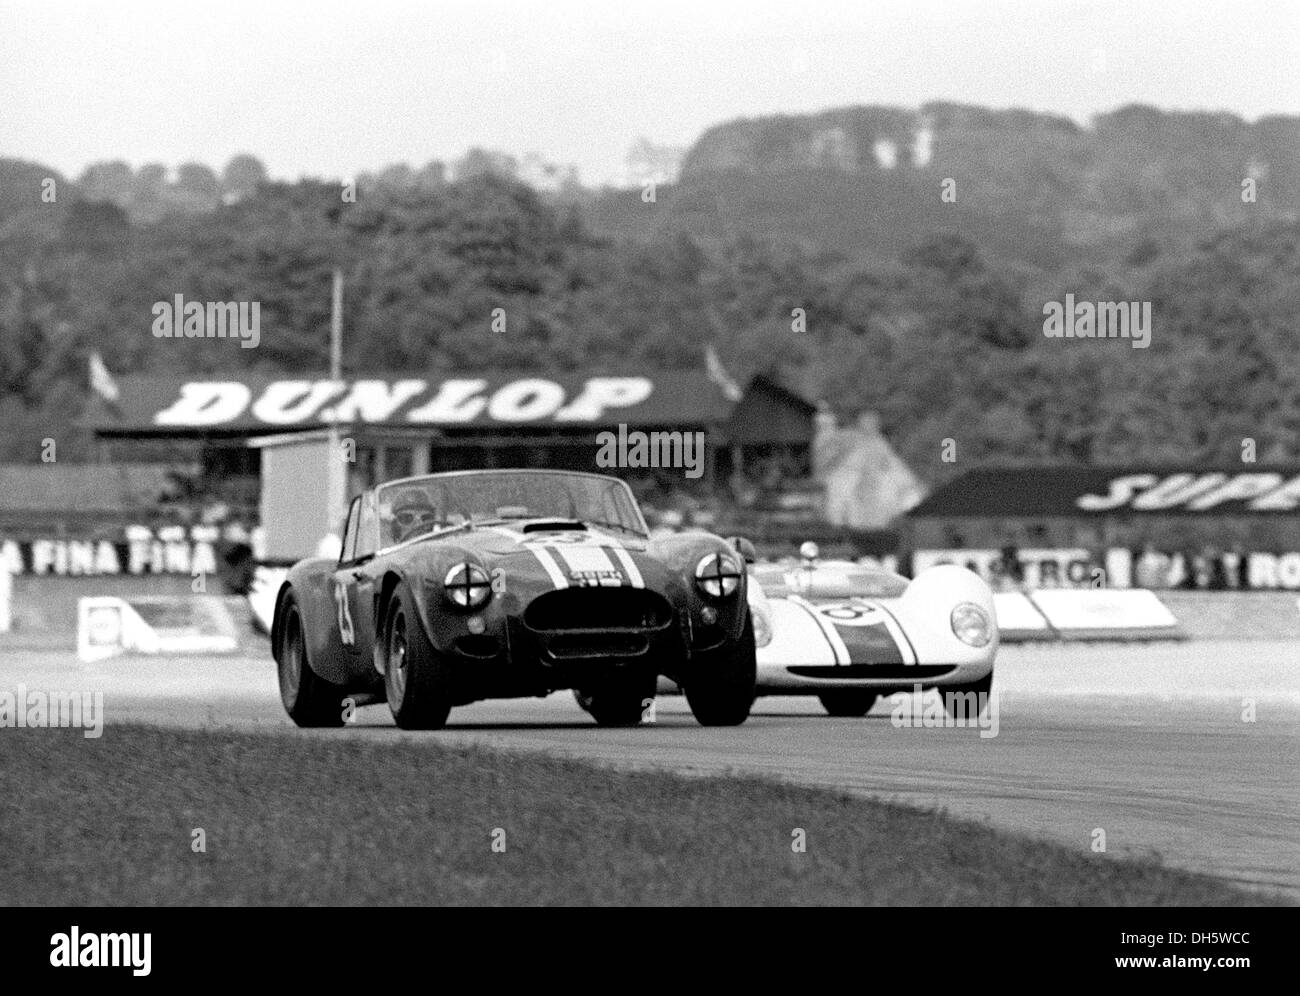 No23 Jack Sears' Willment Cobra, No8 Denny Hulme's Brabham BT8 Climax in the Goodwood RAC TT, England 29th August 1964. - Stock Image